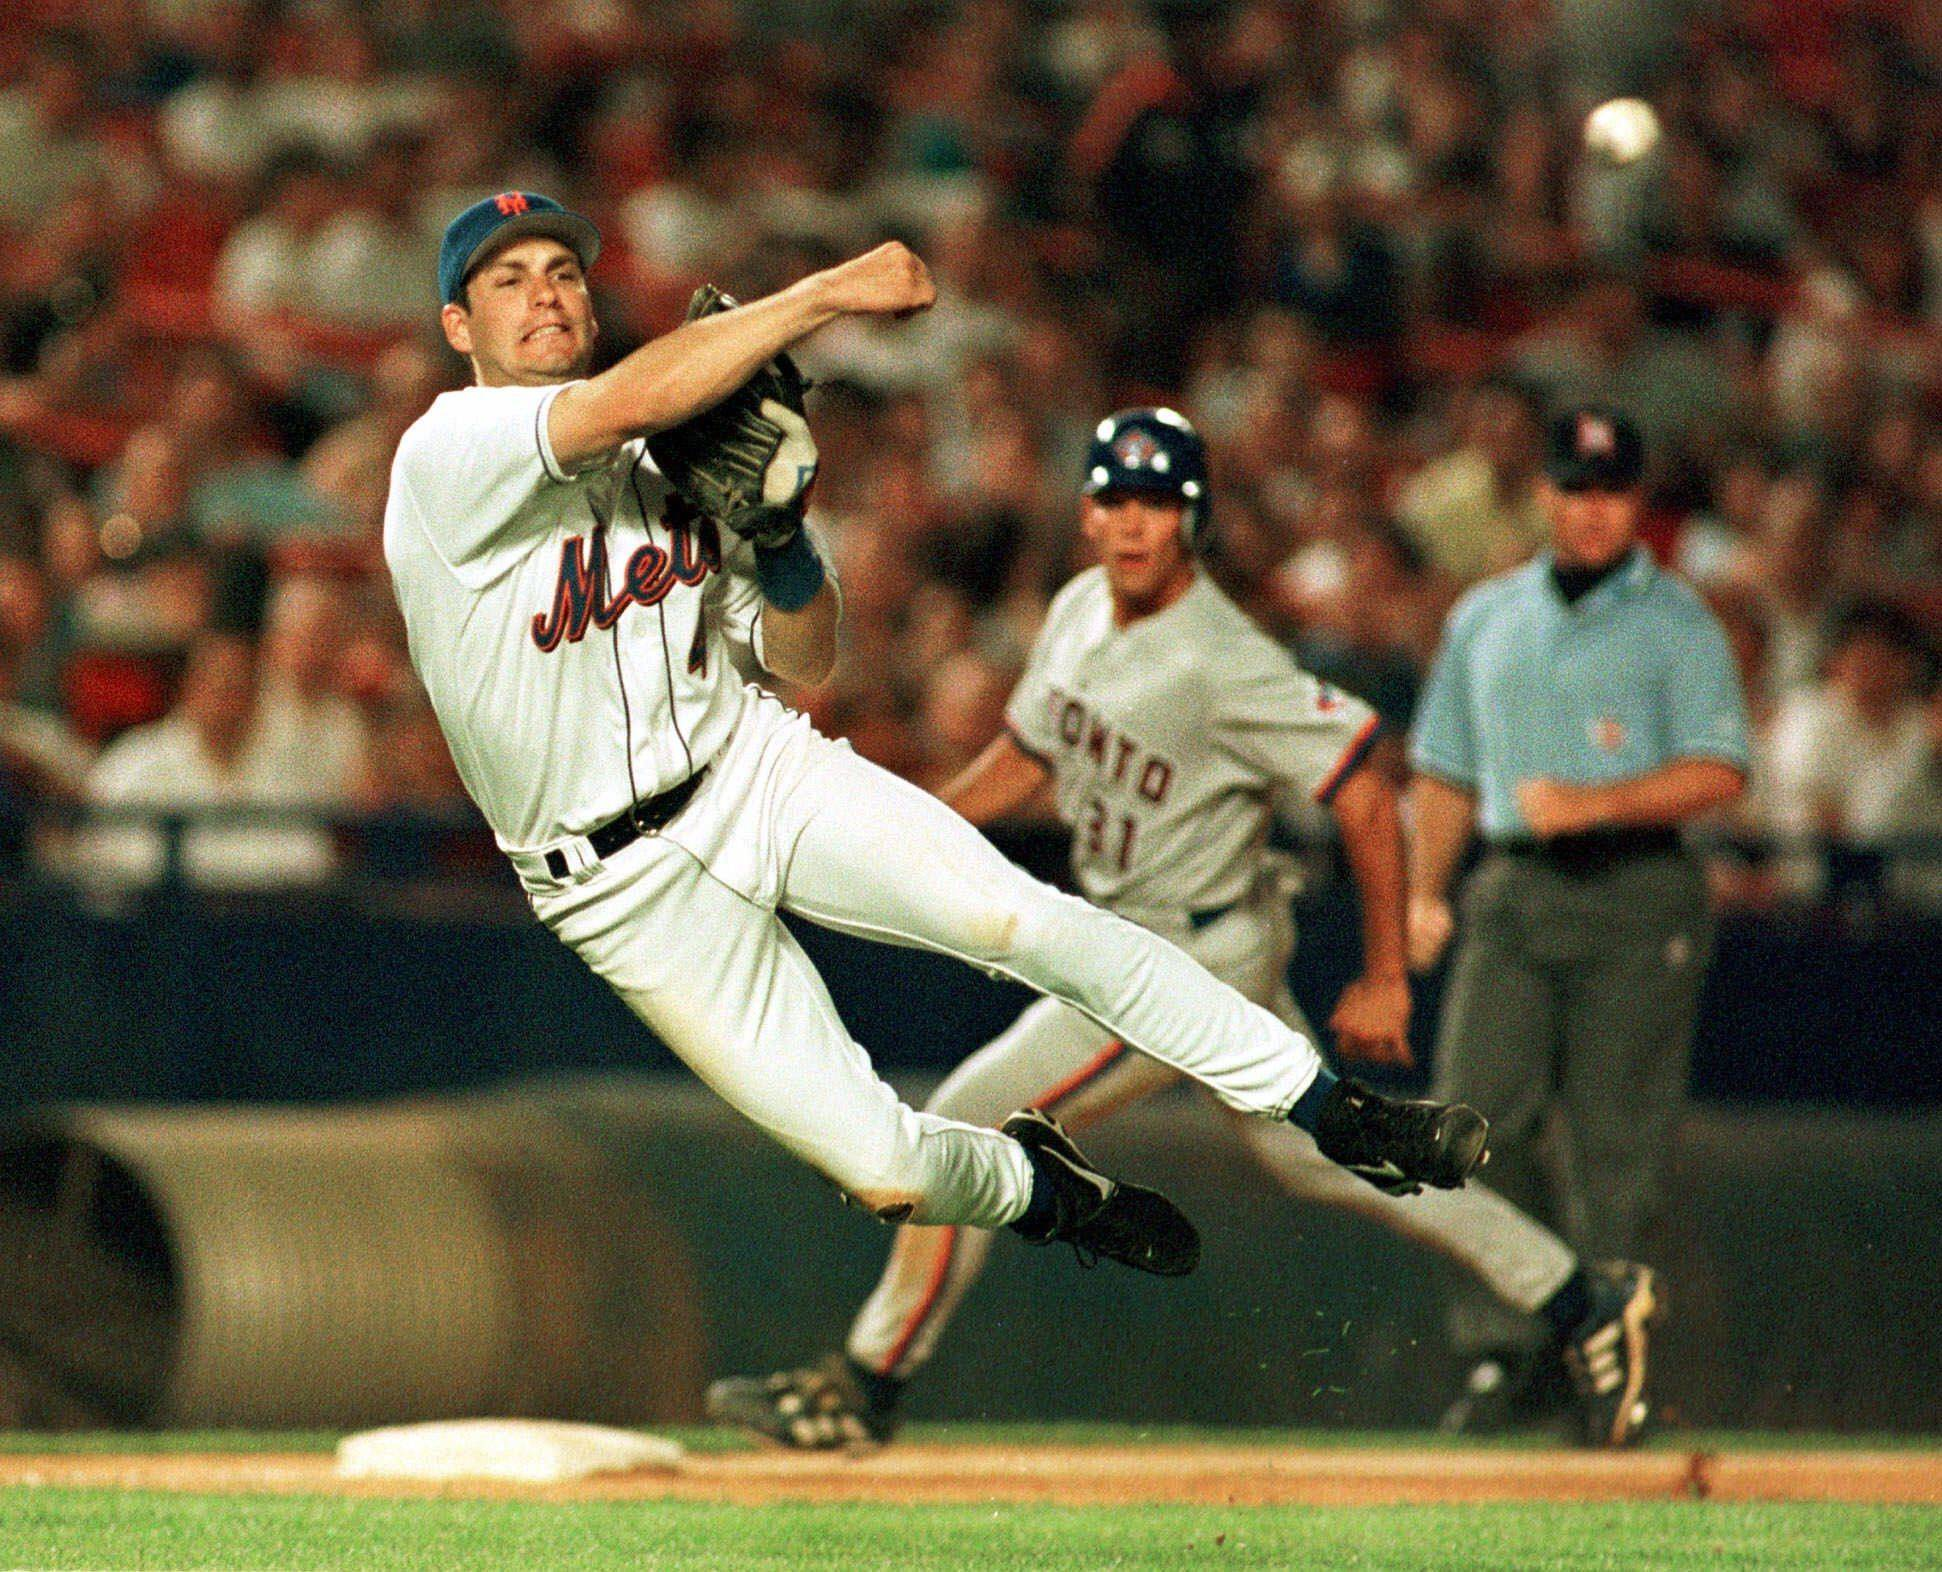 Images: Robin Ventura Through The Years